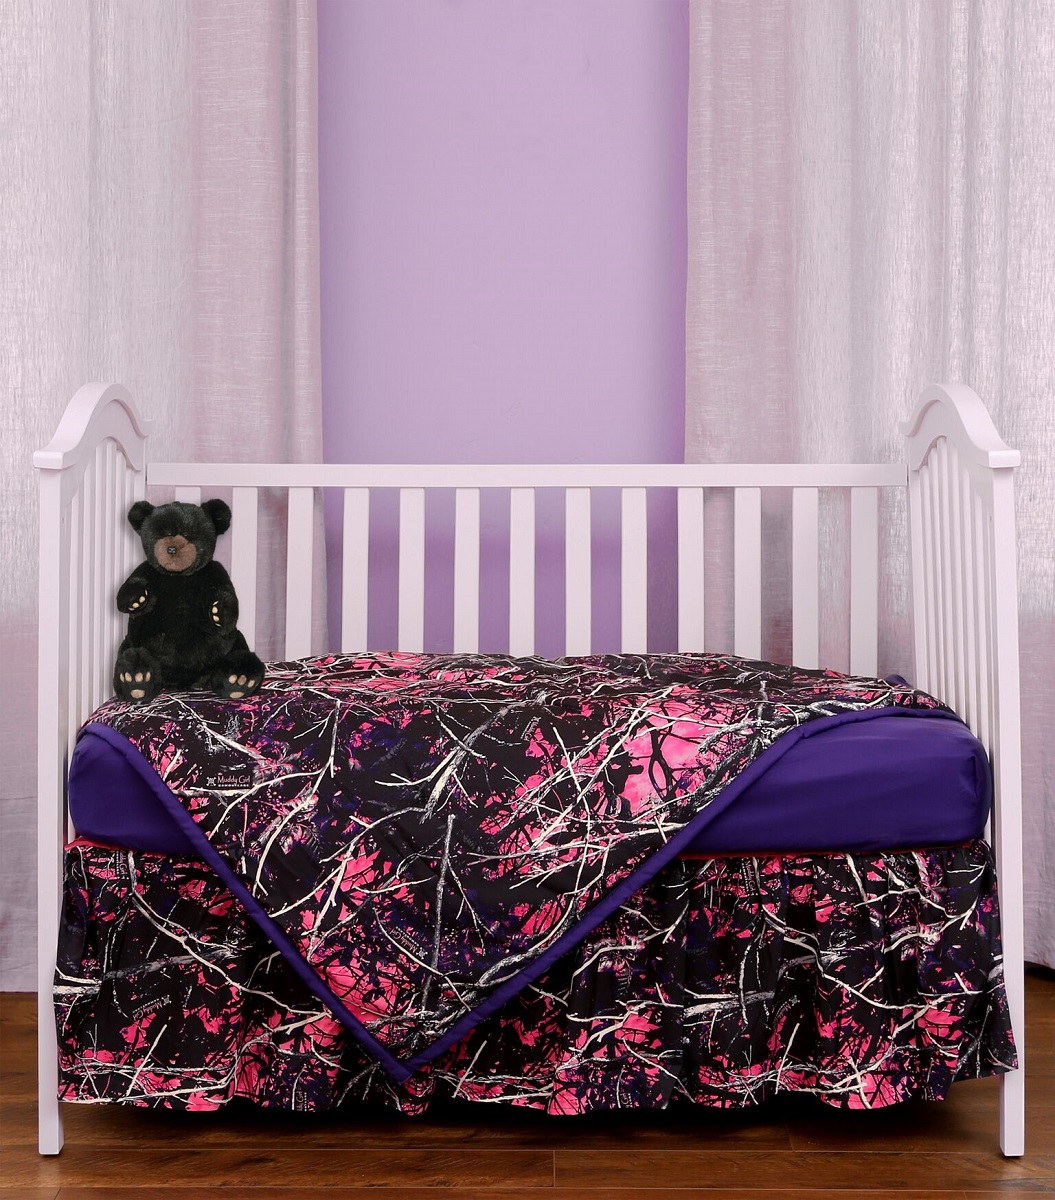 Realtree Camo Crib Toddler Bed Comforter Baby Bedding